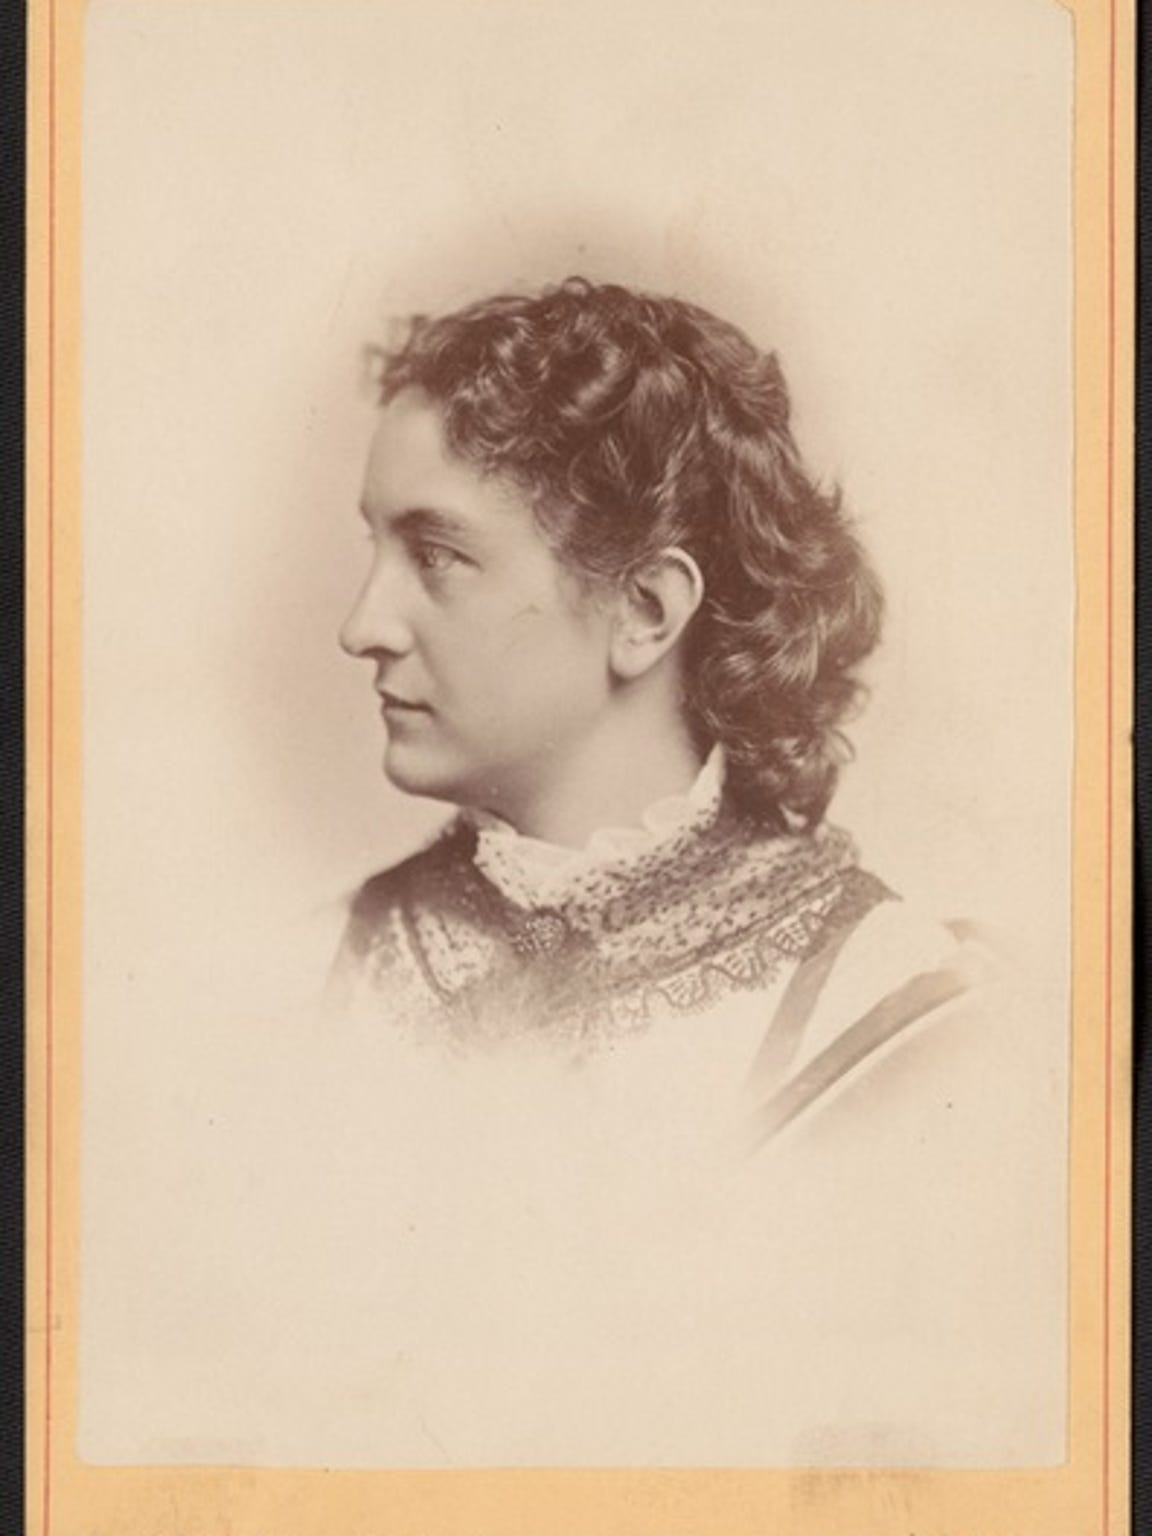 Emma Sheffield Eastman, class of 1873, was the first